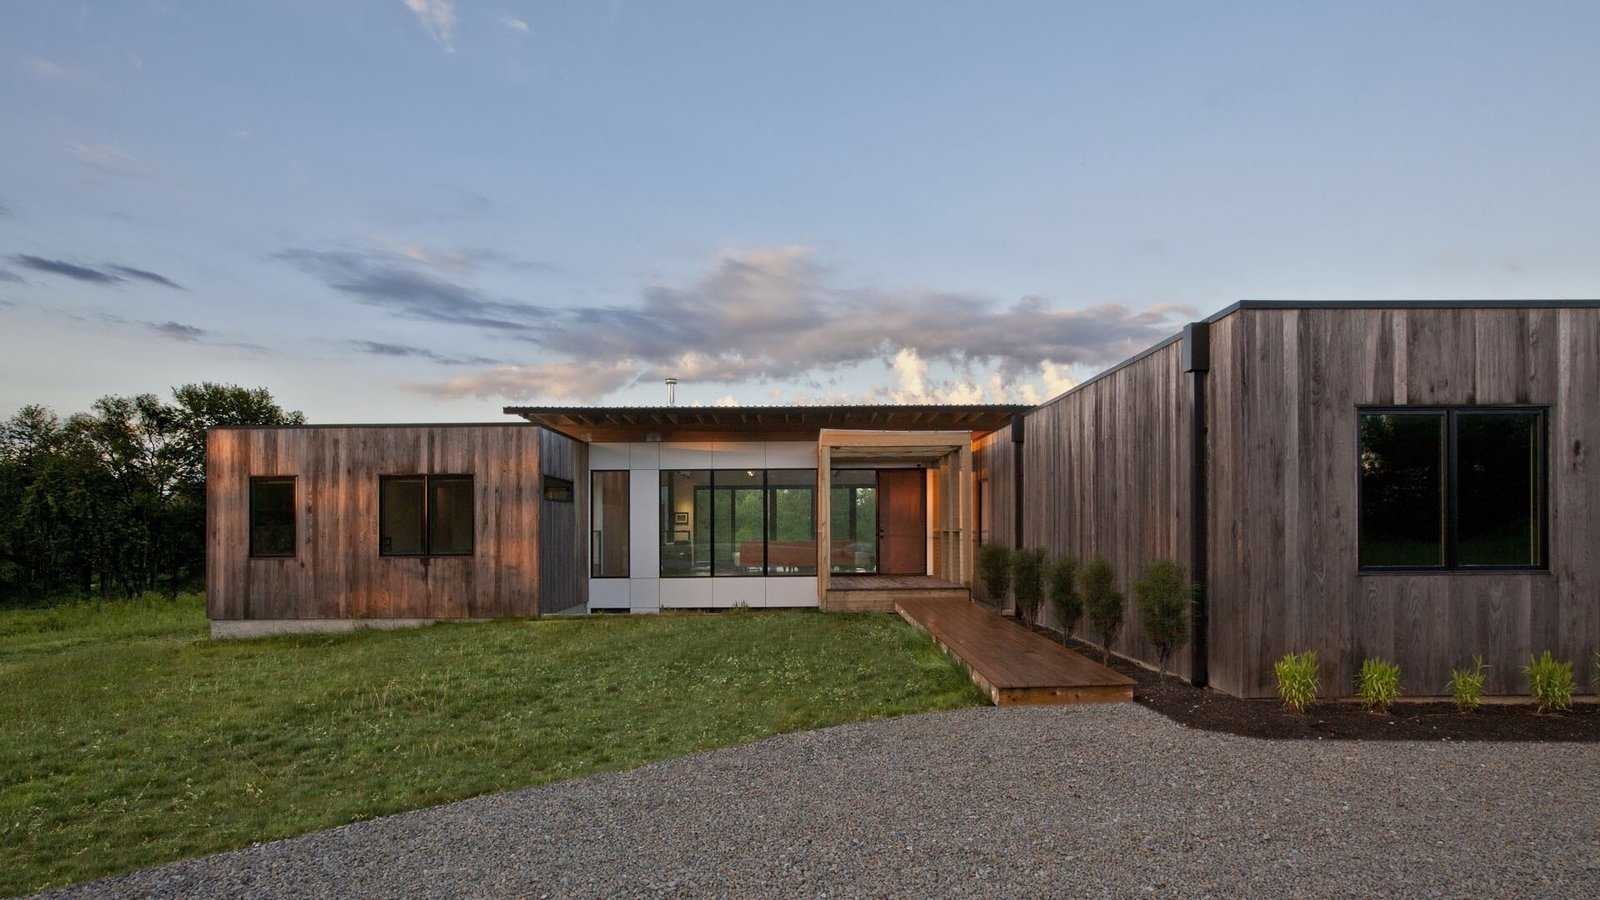 Sunrise at Copperwood. The exterior is comprised of thermally treated Ash and white, cement panels.  Tagged: Outdoor, Grass, Field, Shrubs, Front Yard, Hardscapes, Trees, Decking Patio, Porch, Deck, and Large Patio, Porch, Deck.  Copperwood by Kevin Swan